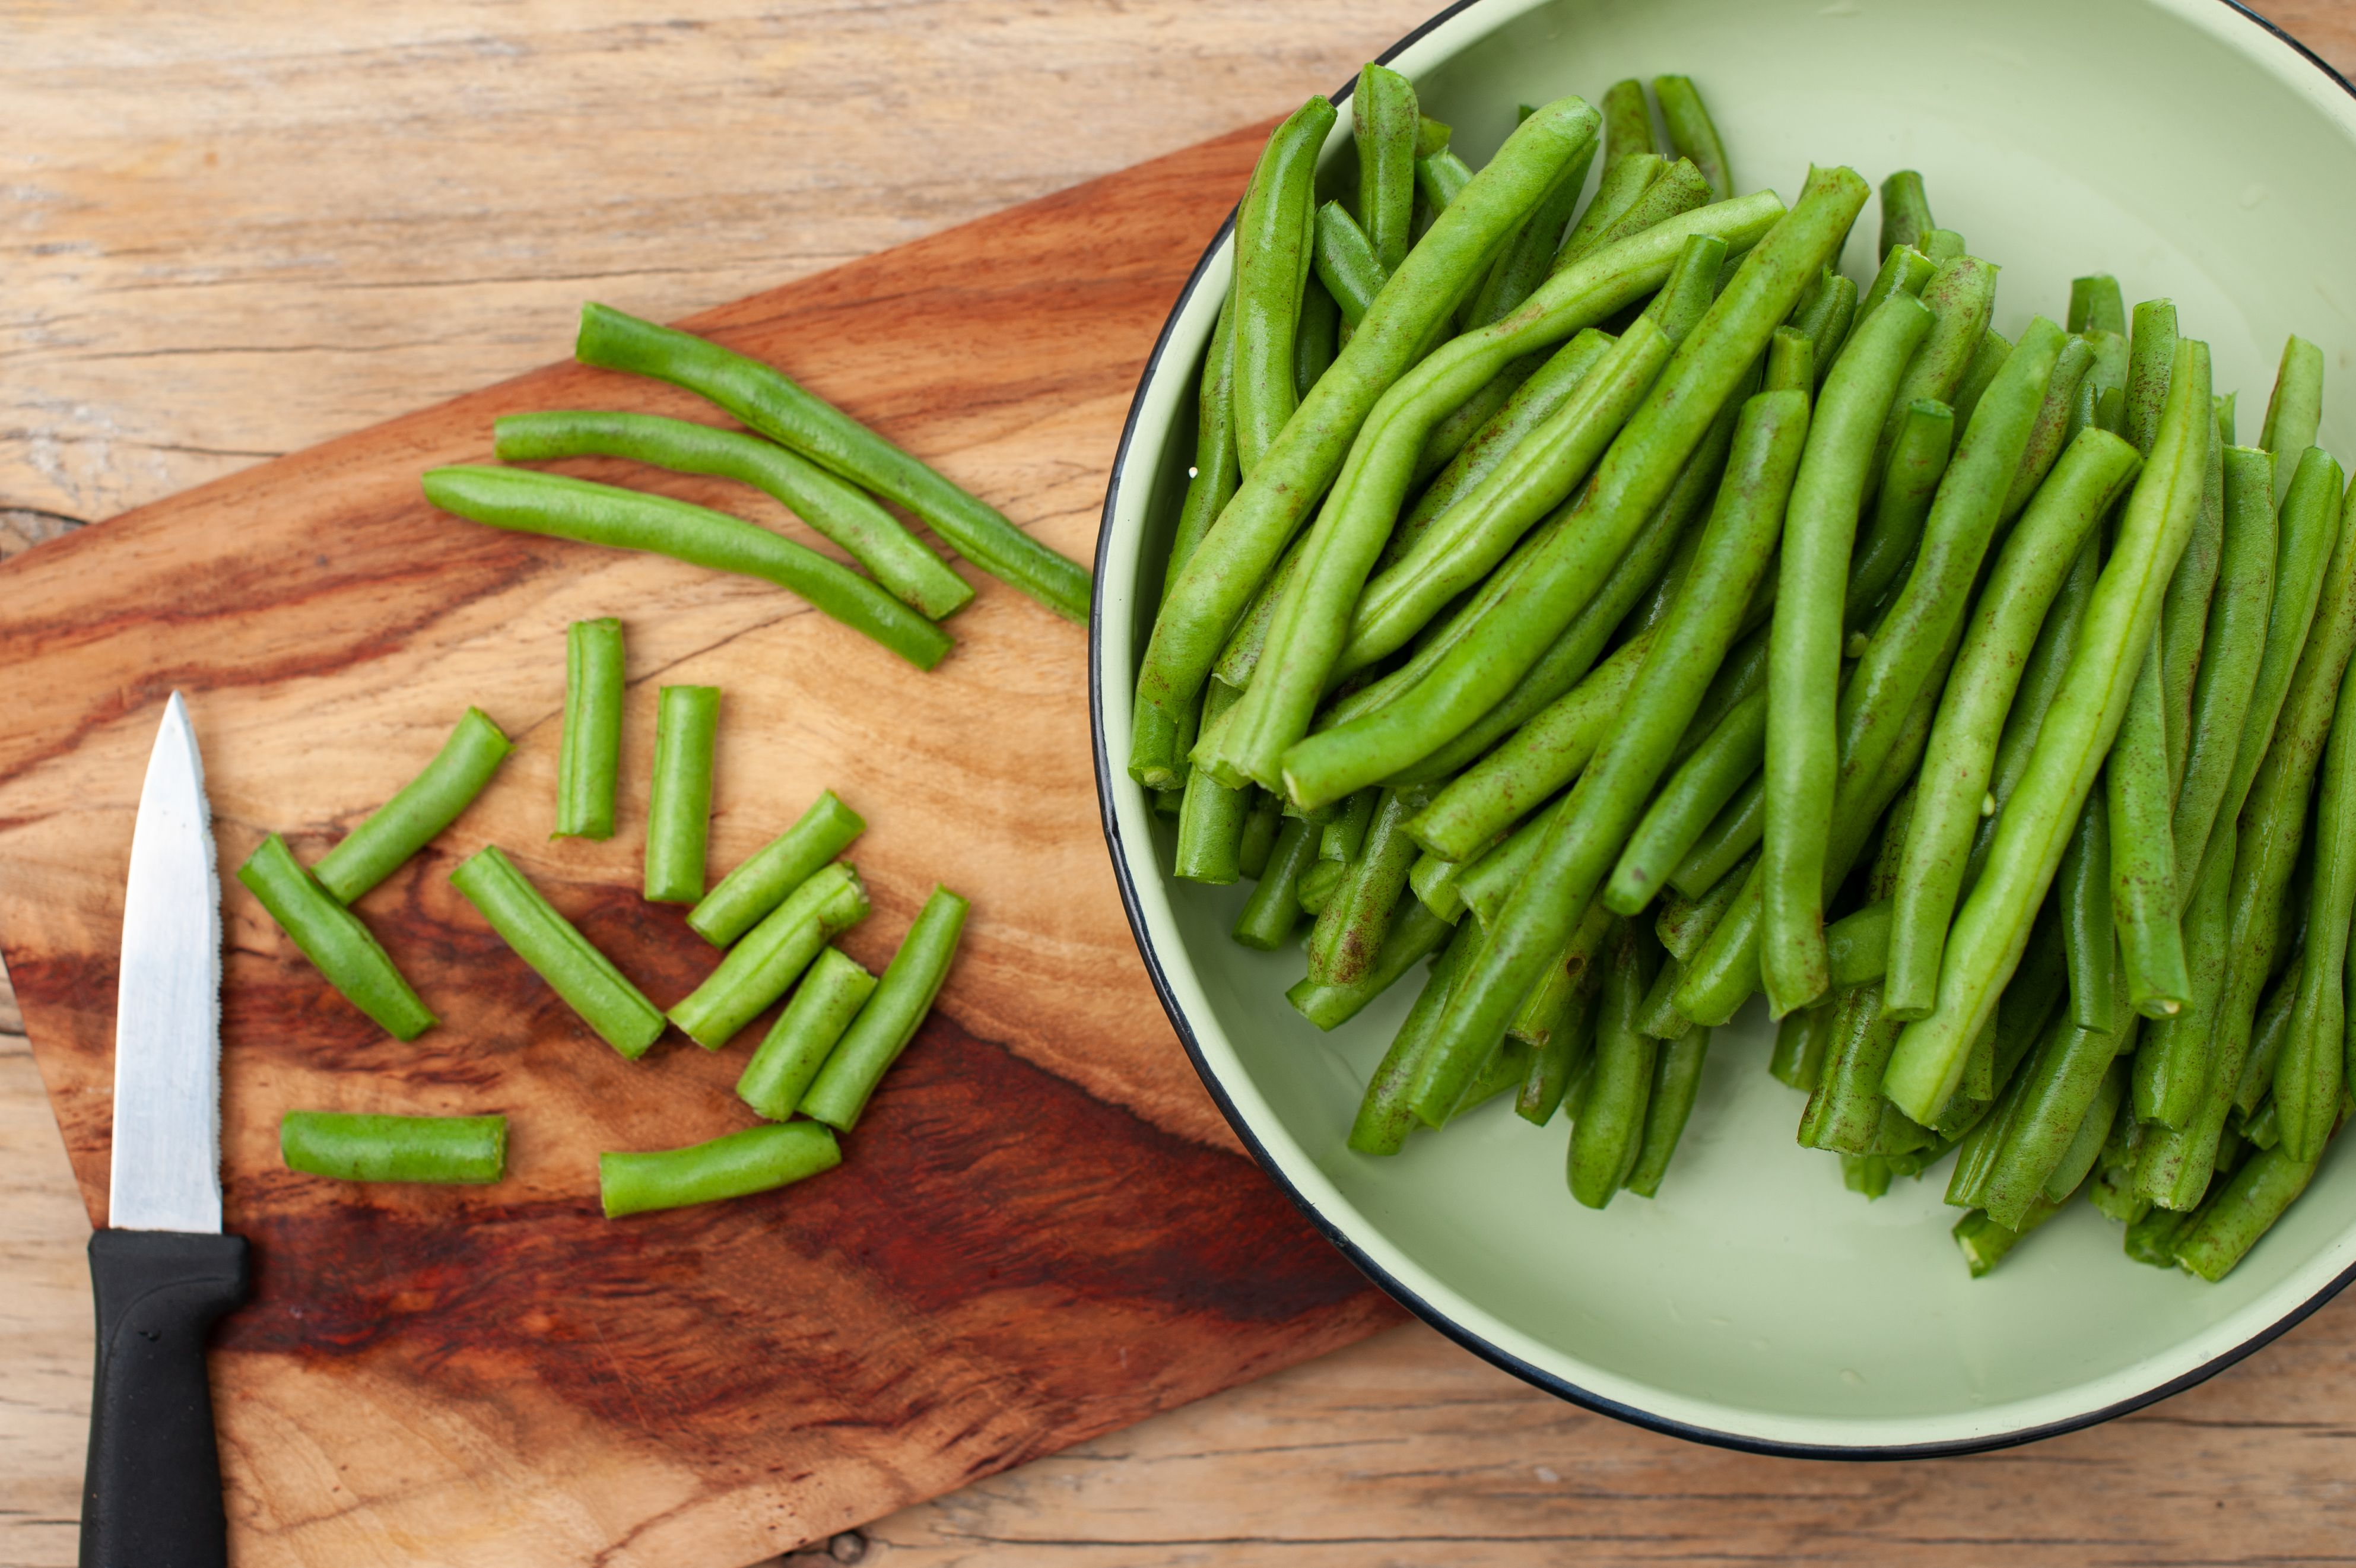 Topping and tailing the green beans